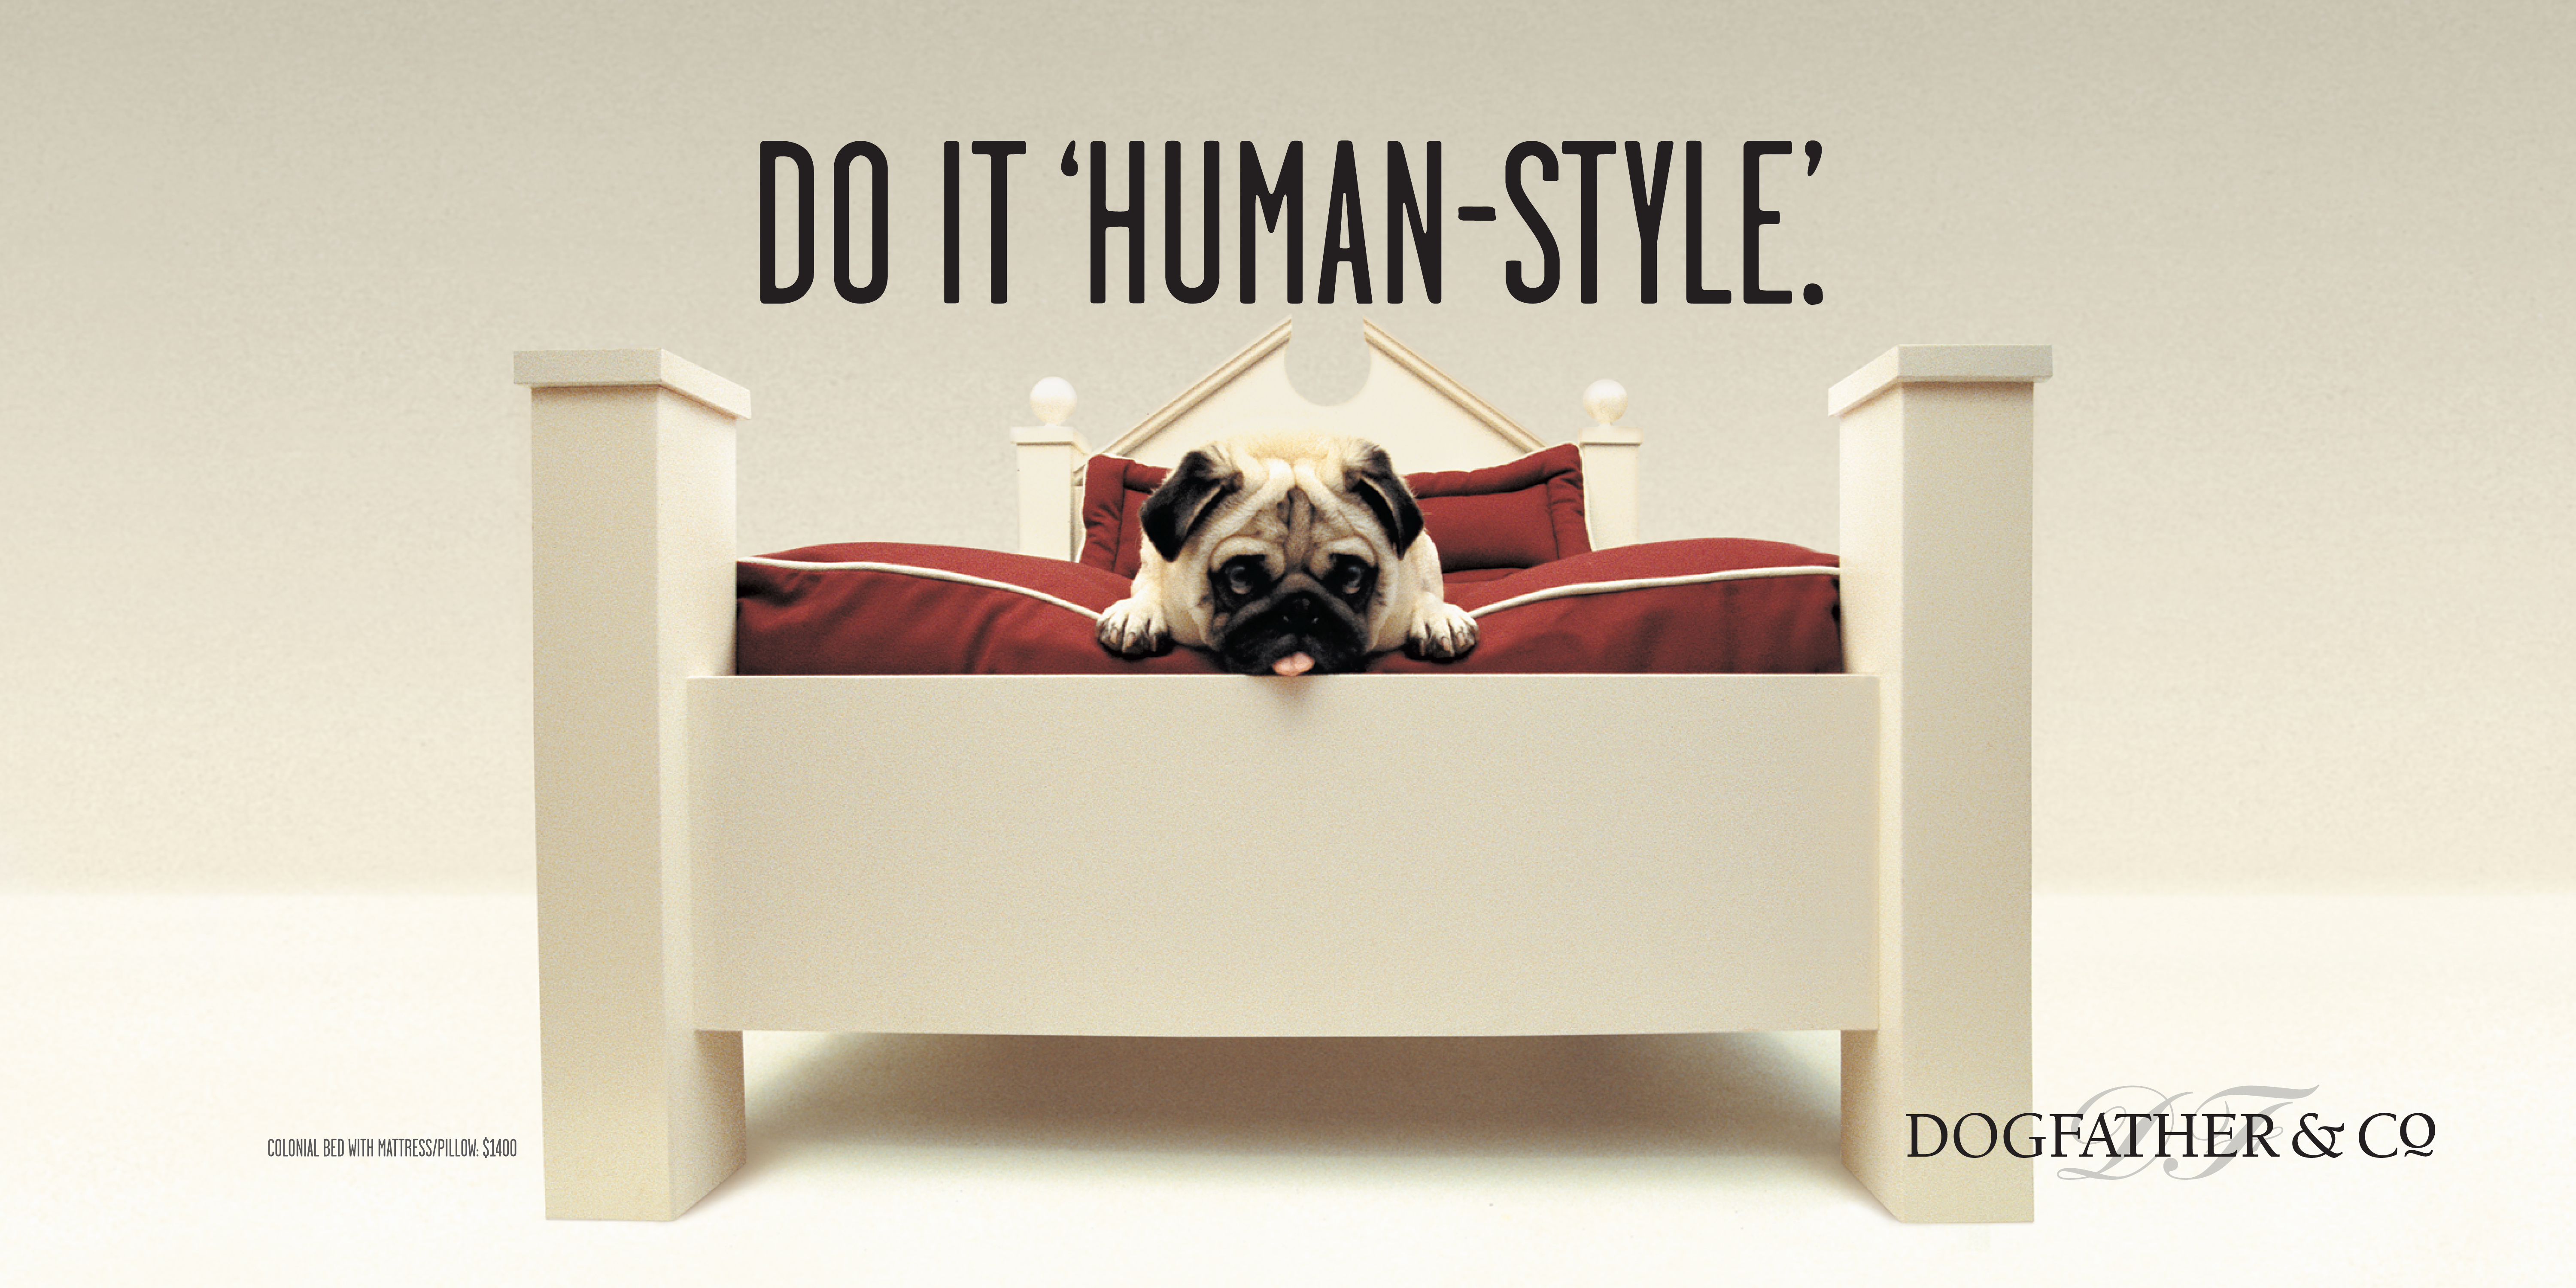 Dog beds dogfather and co canine retail and dog grooming in toronto handcrafted and designed in canada our beds are so comfortable you will want to sleep in them yourself solutioingenieria Images